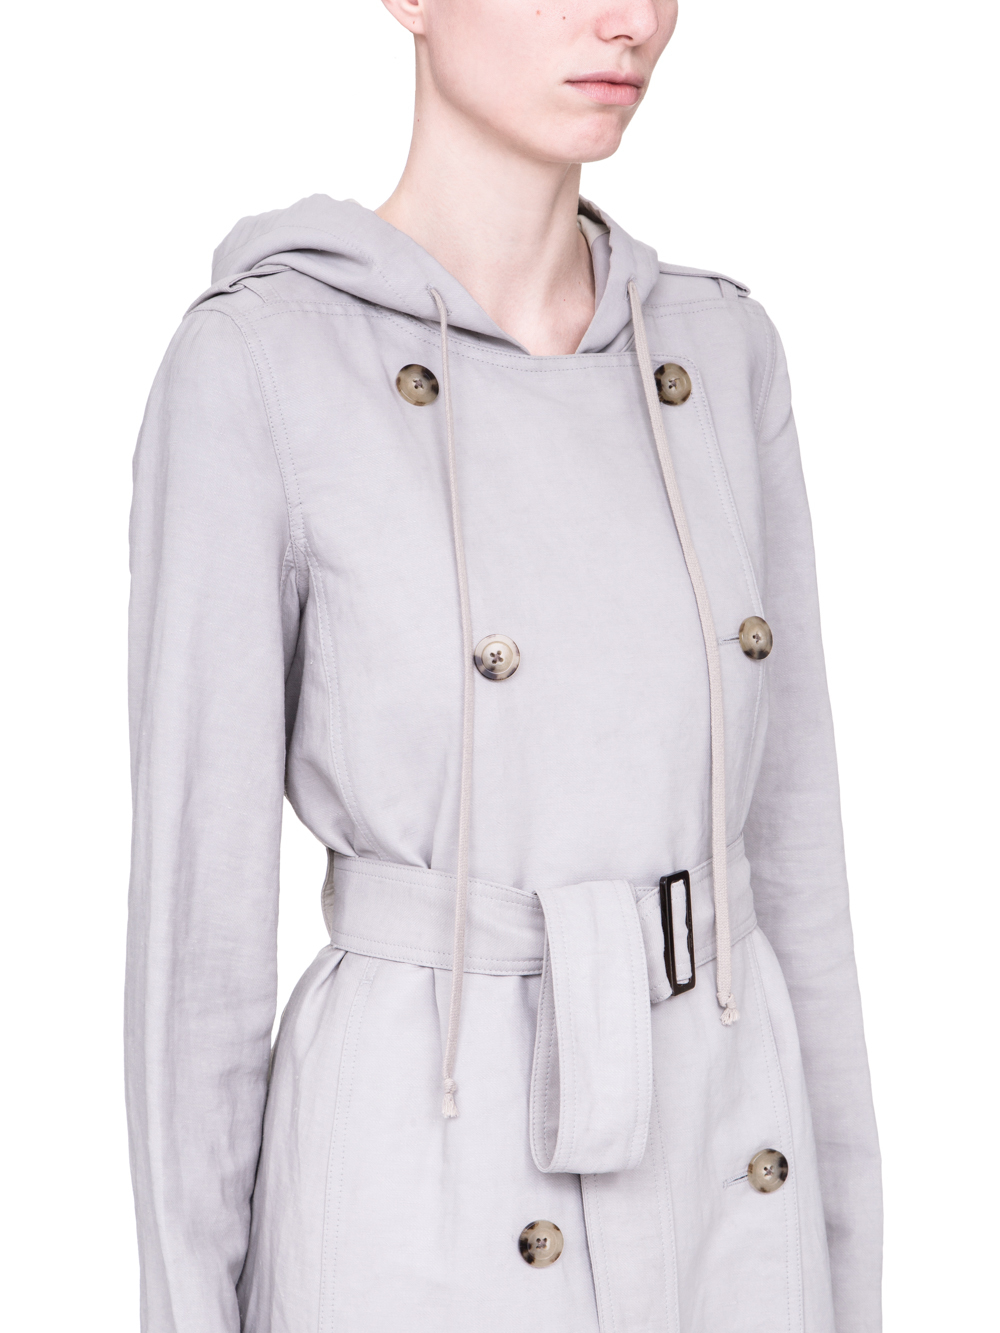 RICK OWENS SS19 BABEL SOFT TRENCH IN OYSTER LIGHT GREY